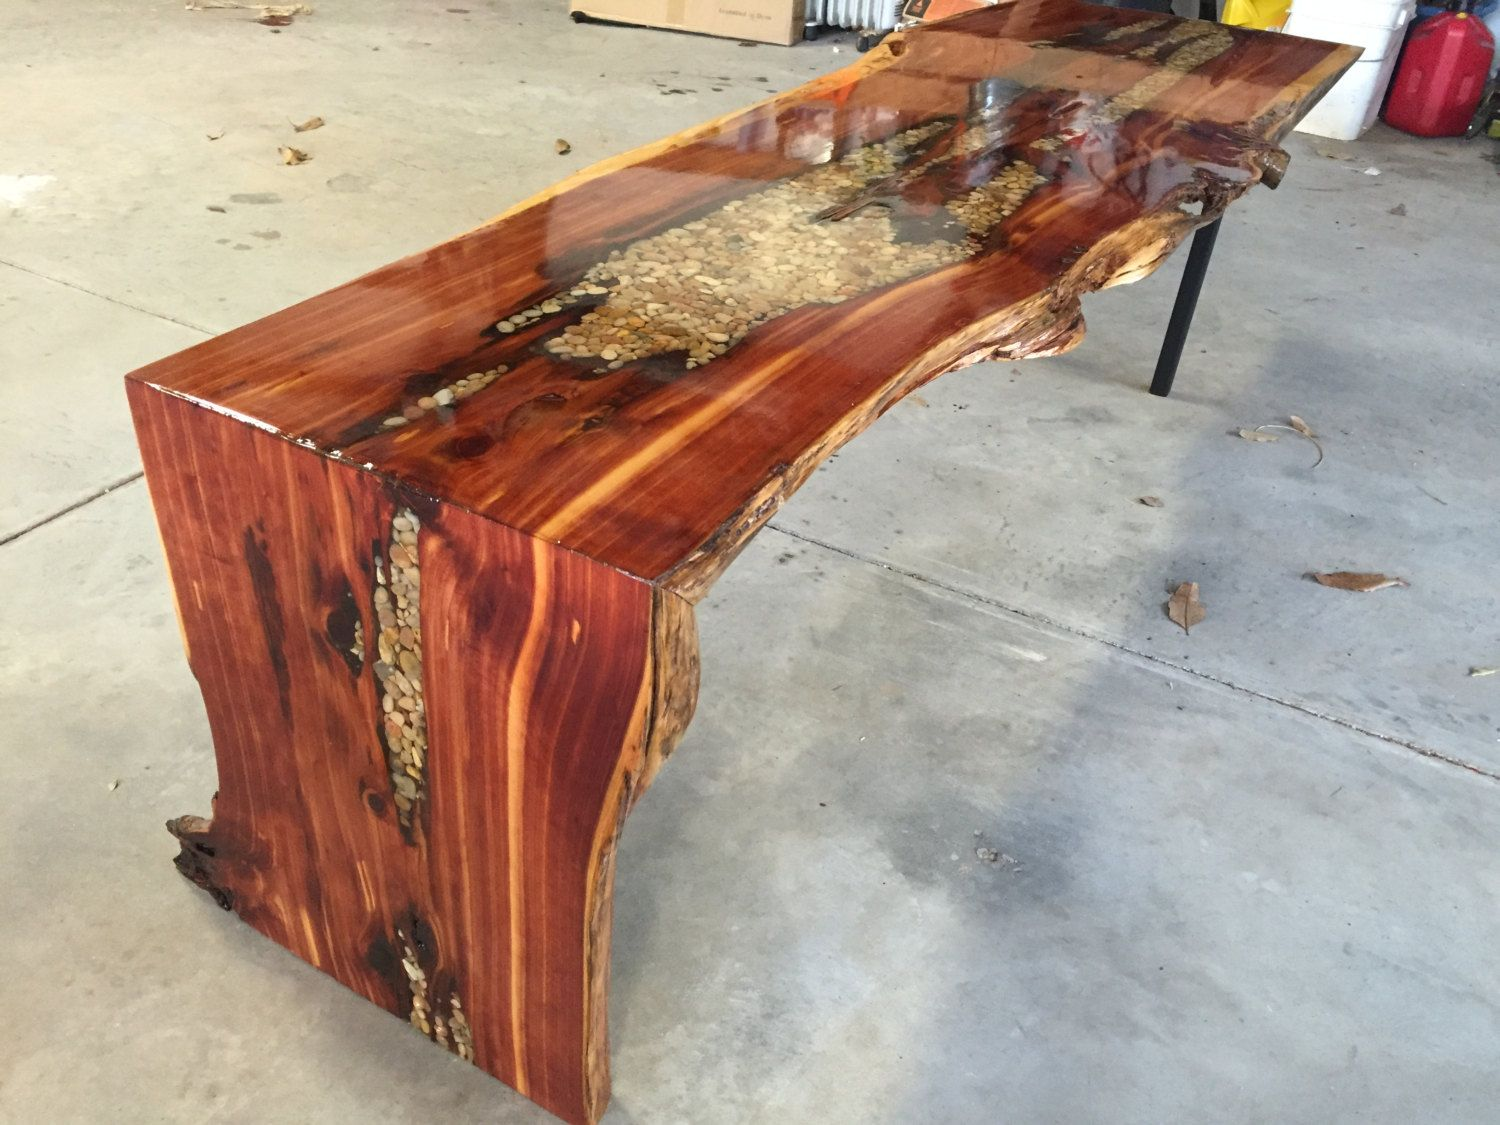 Live Edge Waterfall Coffee Table By Ninjawarriorwhittler